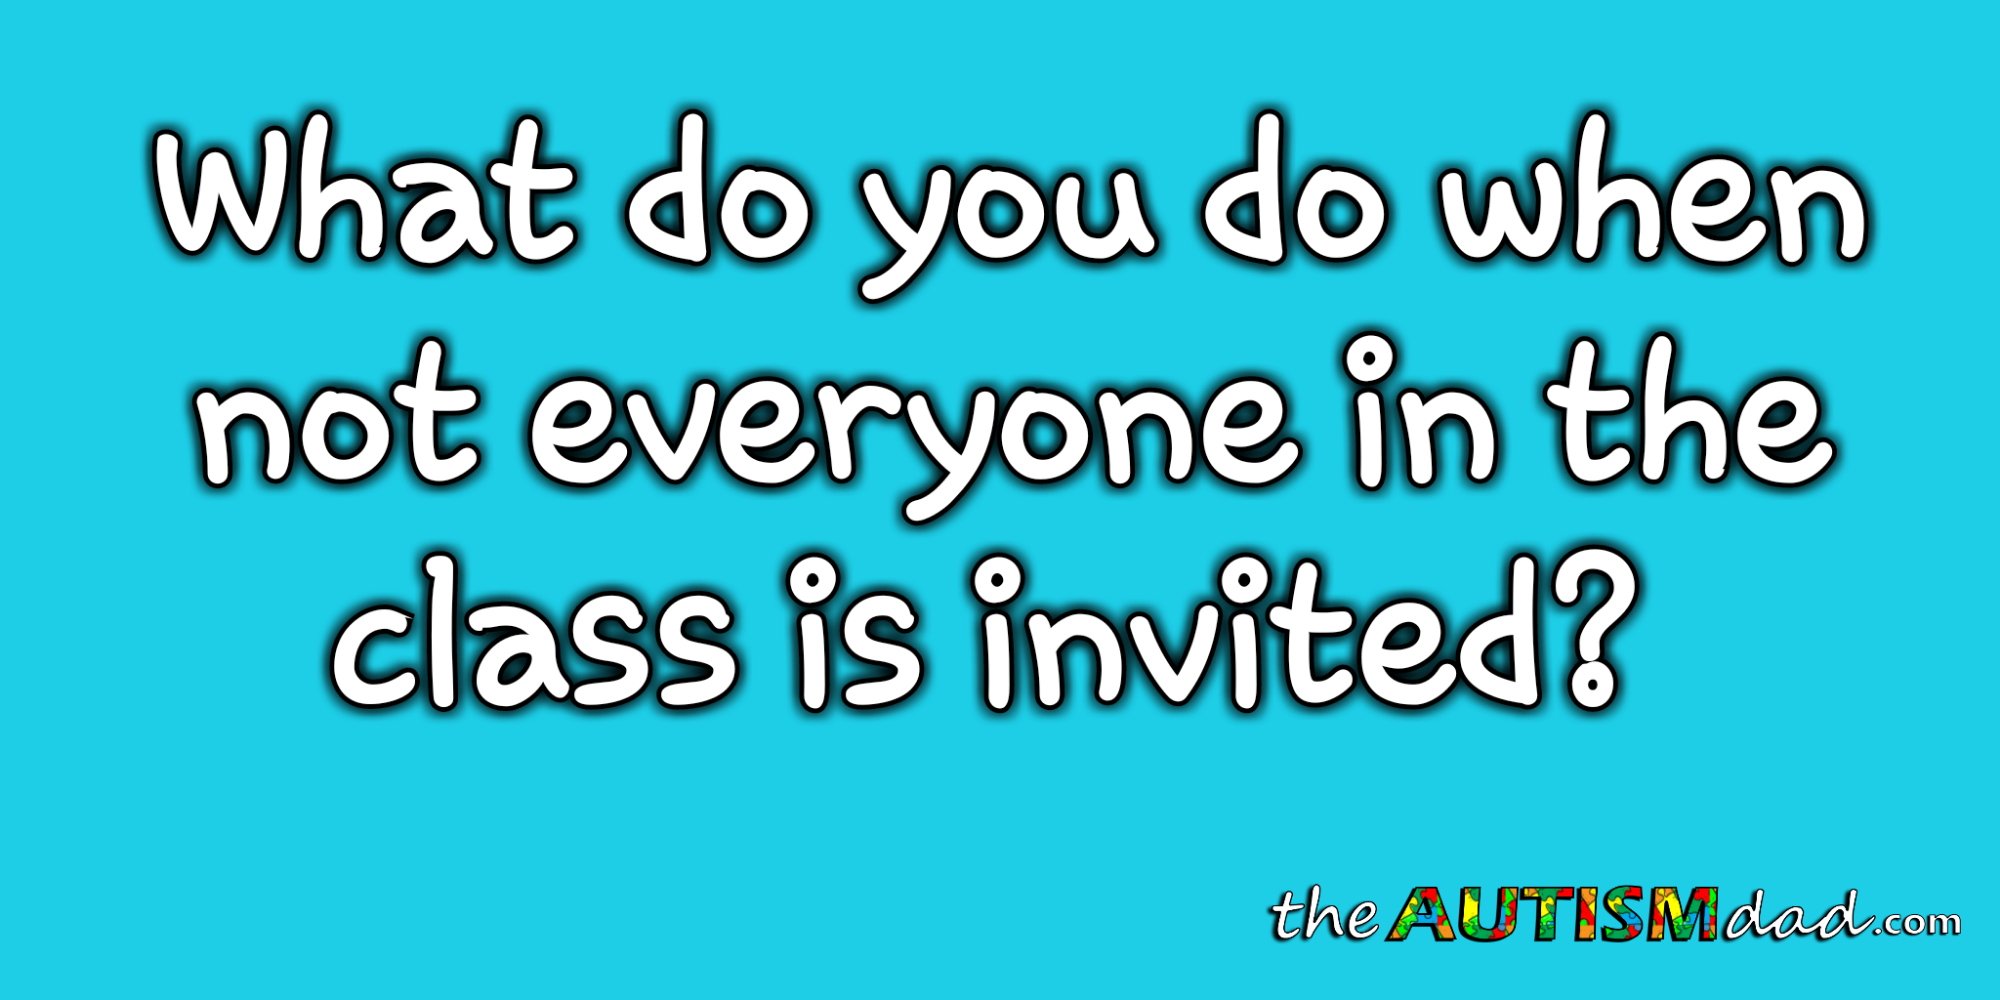 What do you do when not everyone in the class is invited?